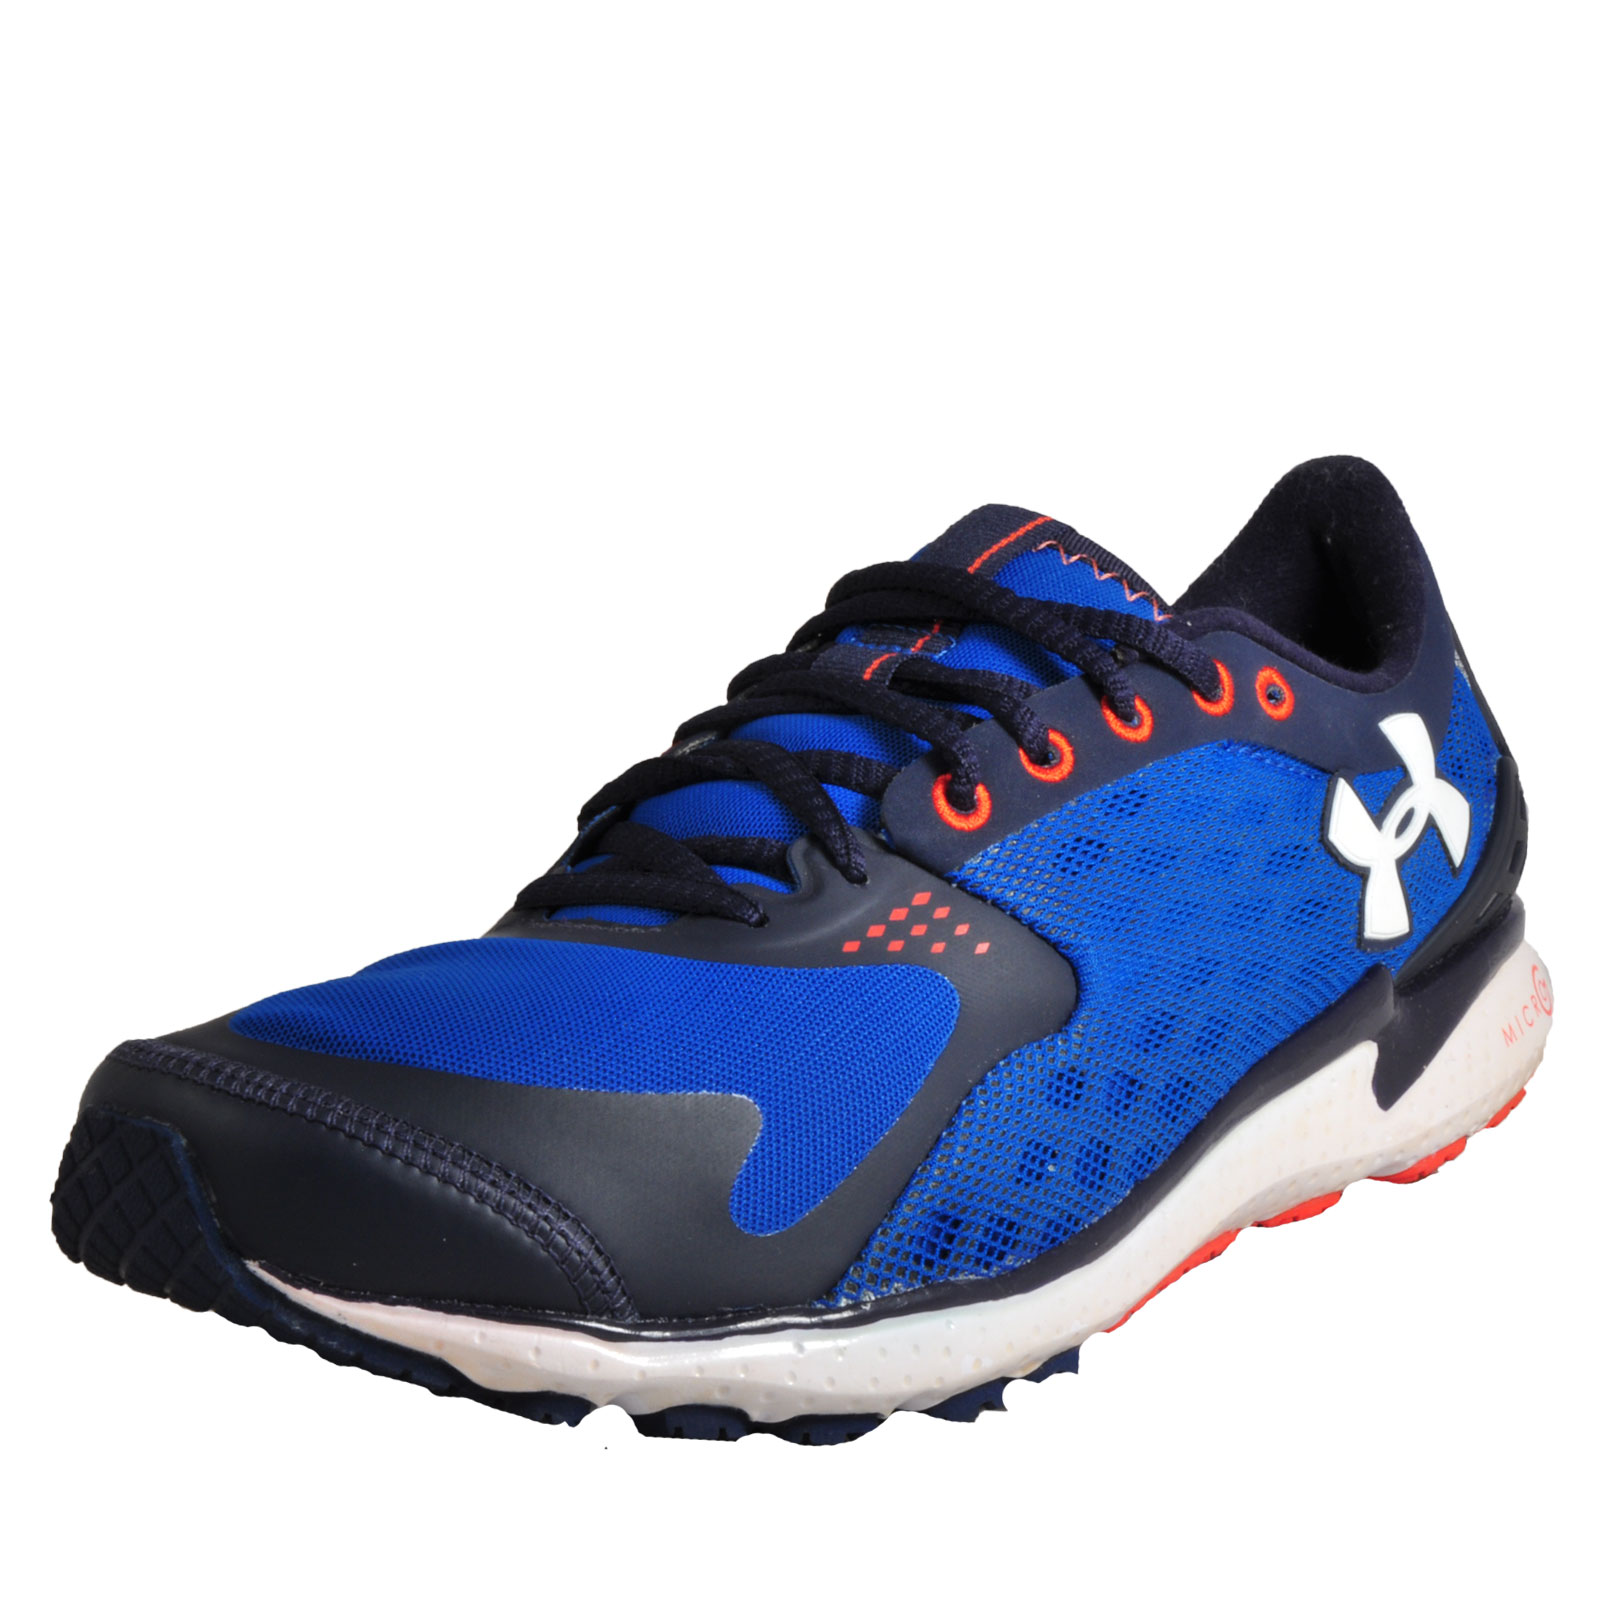 ae6605feb49a Details about Under Armour Micro G Defy Men s Running Shoes Fitness Gym  Trainers Blue